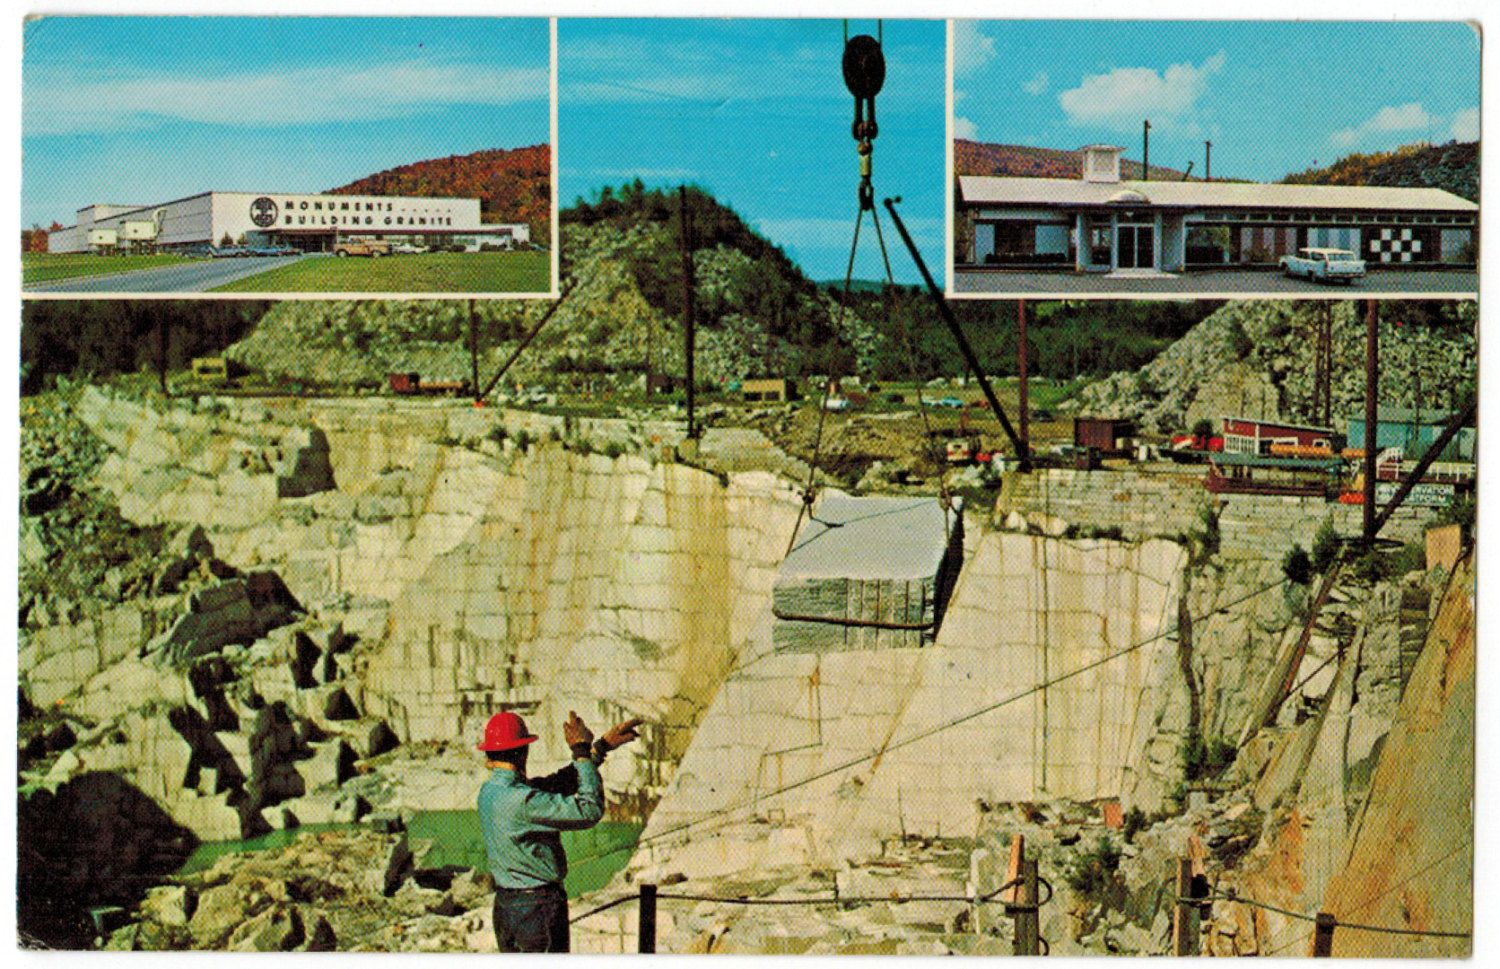 Vermont Vintage Postcard Barre Rock Of Ages Granite Quarry Mountain Wall Decor 1960s Retro By Postcardigans O Travel Postcard Vermont Mountains Tourist